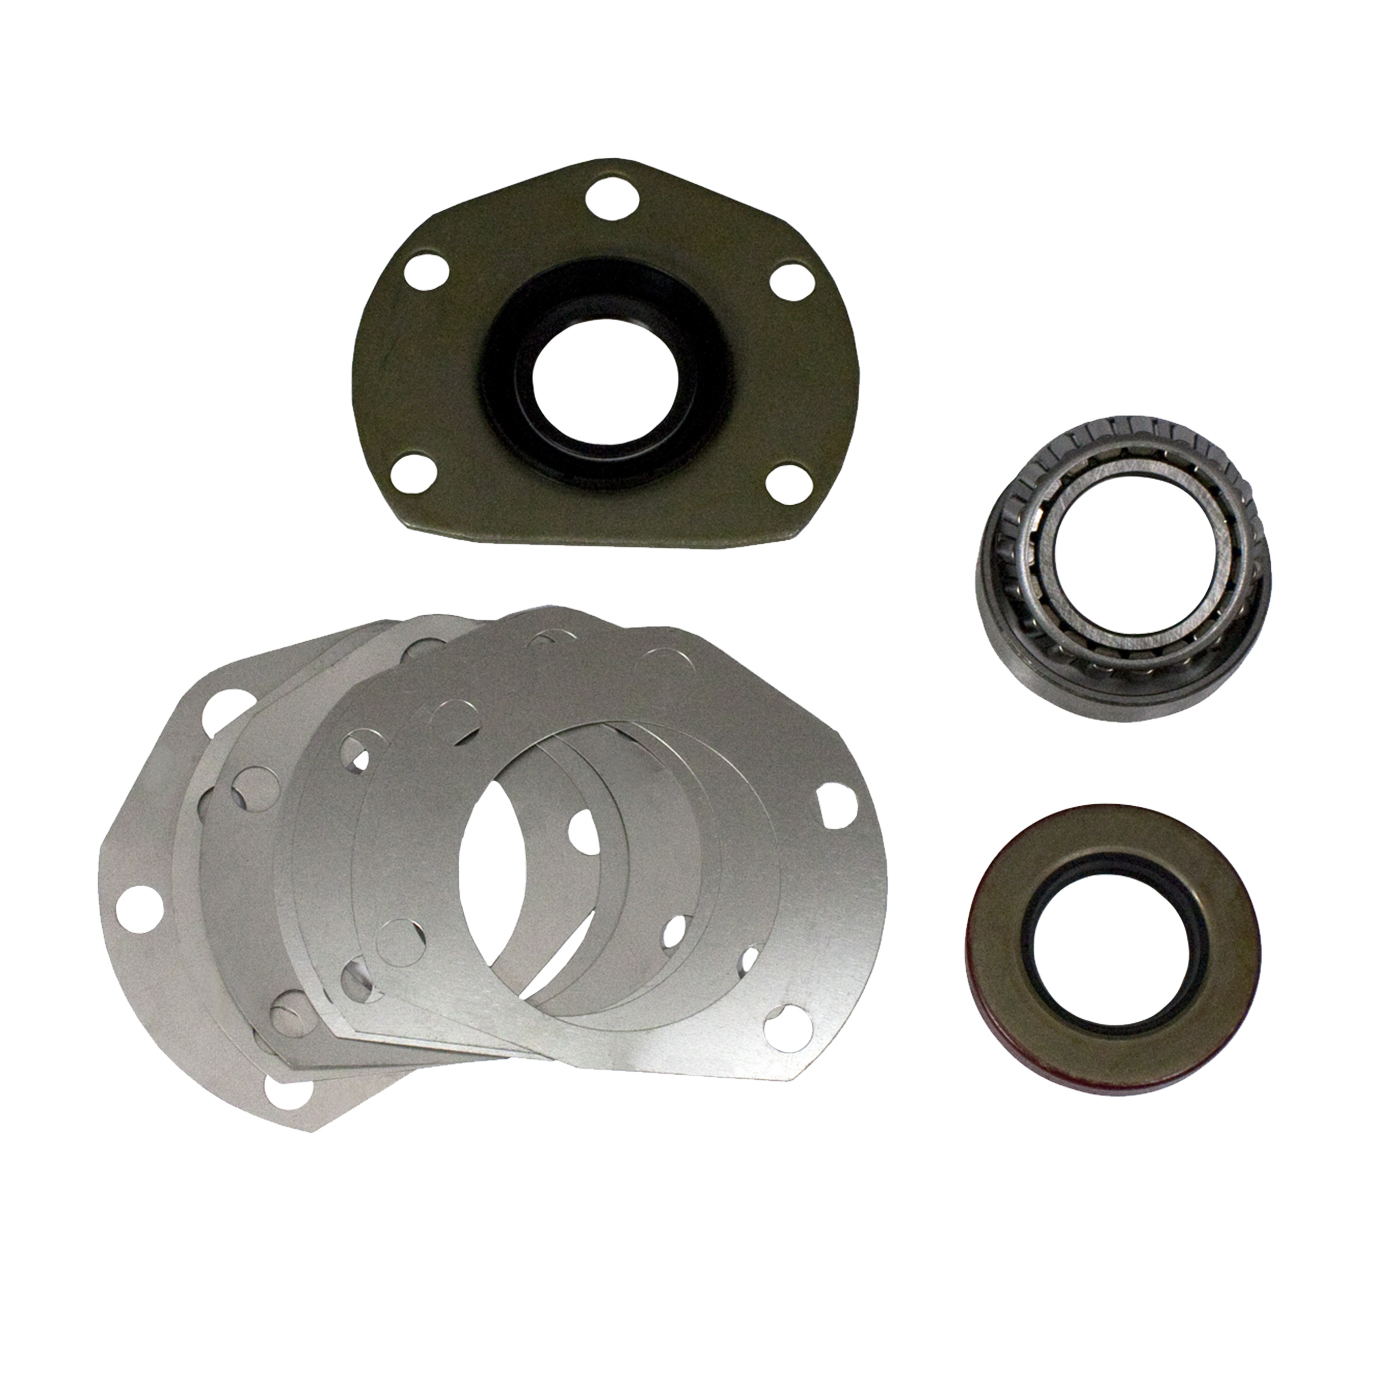 AK M20 - Yukon Axle Bearing and Seal Kit for AMC Model 20